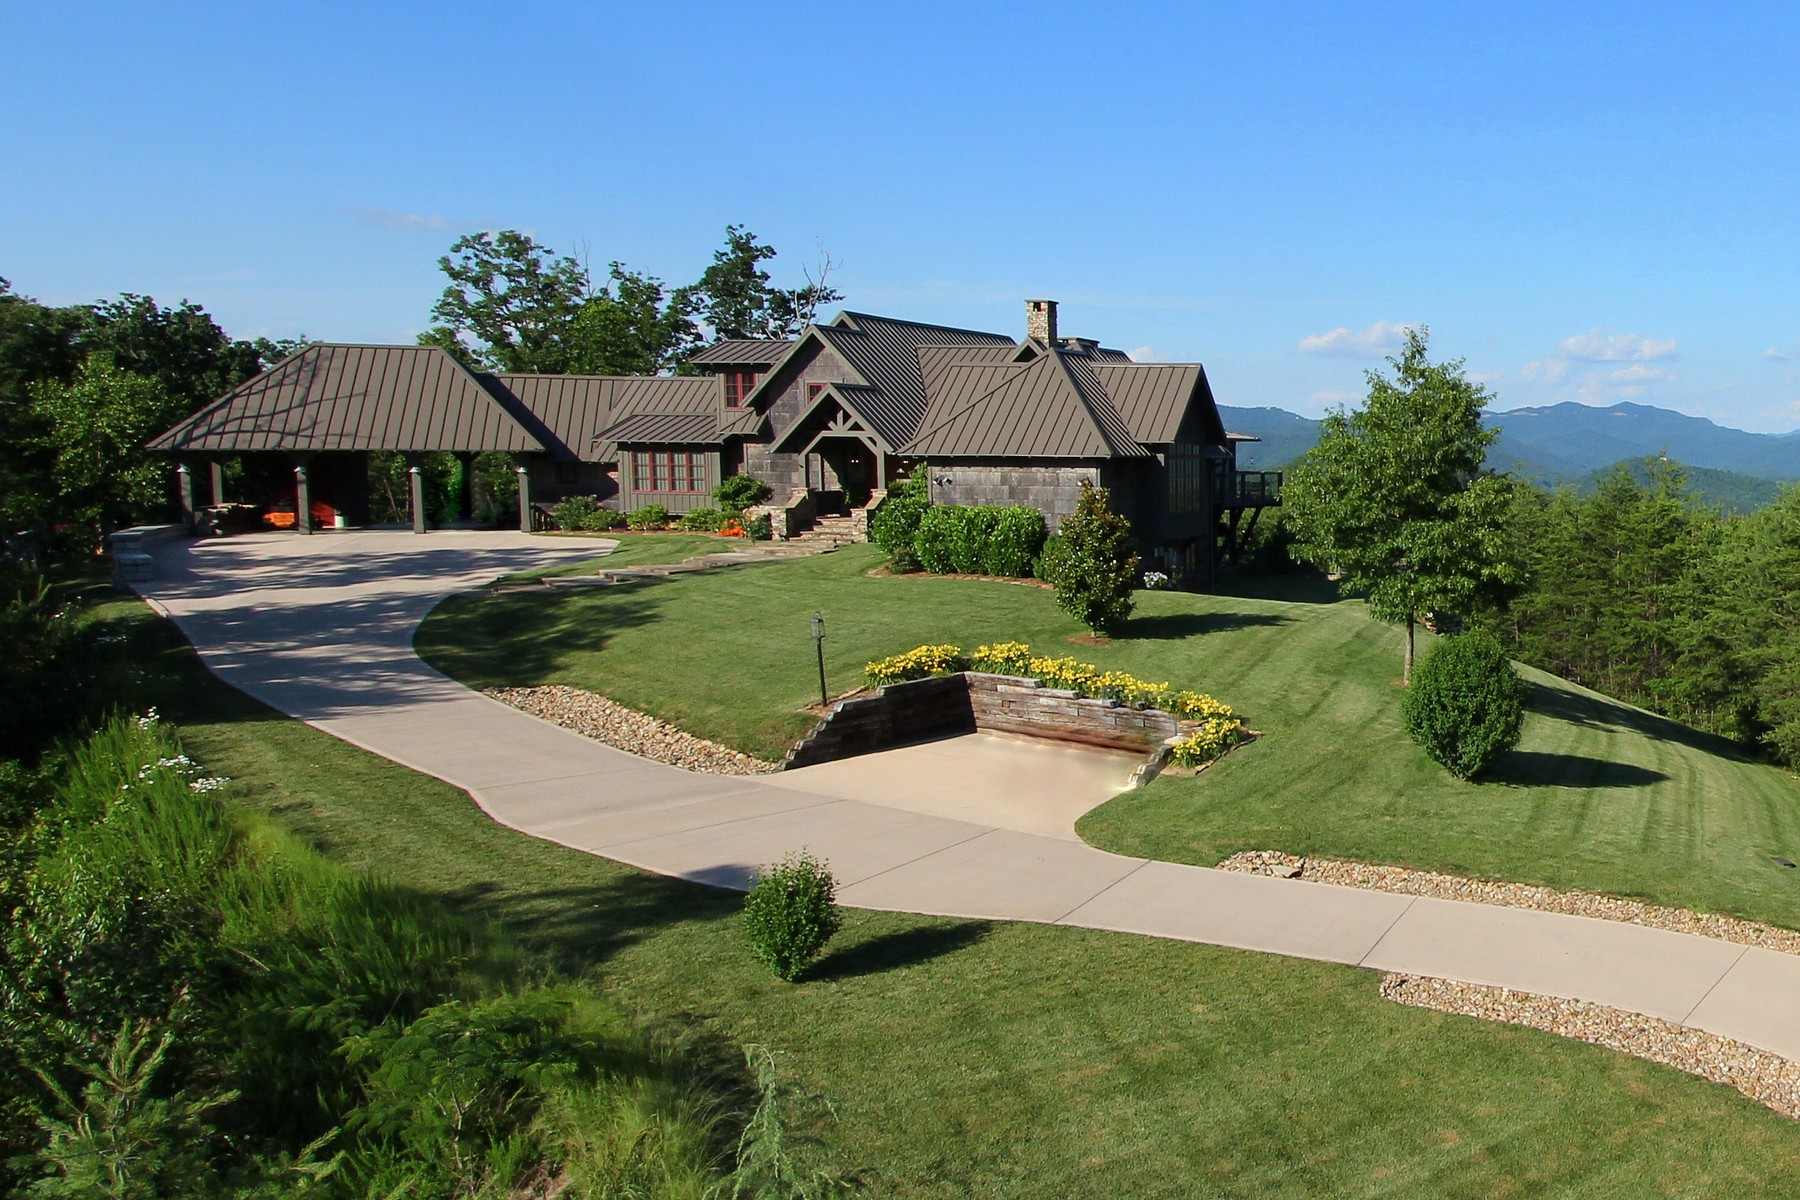 Maison unifamiliale pour l Vente à Stunning Mountain Retreat 775 Hawk View Road Townsend, Tennessee 37882 États-Unis